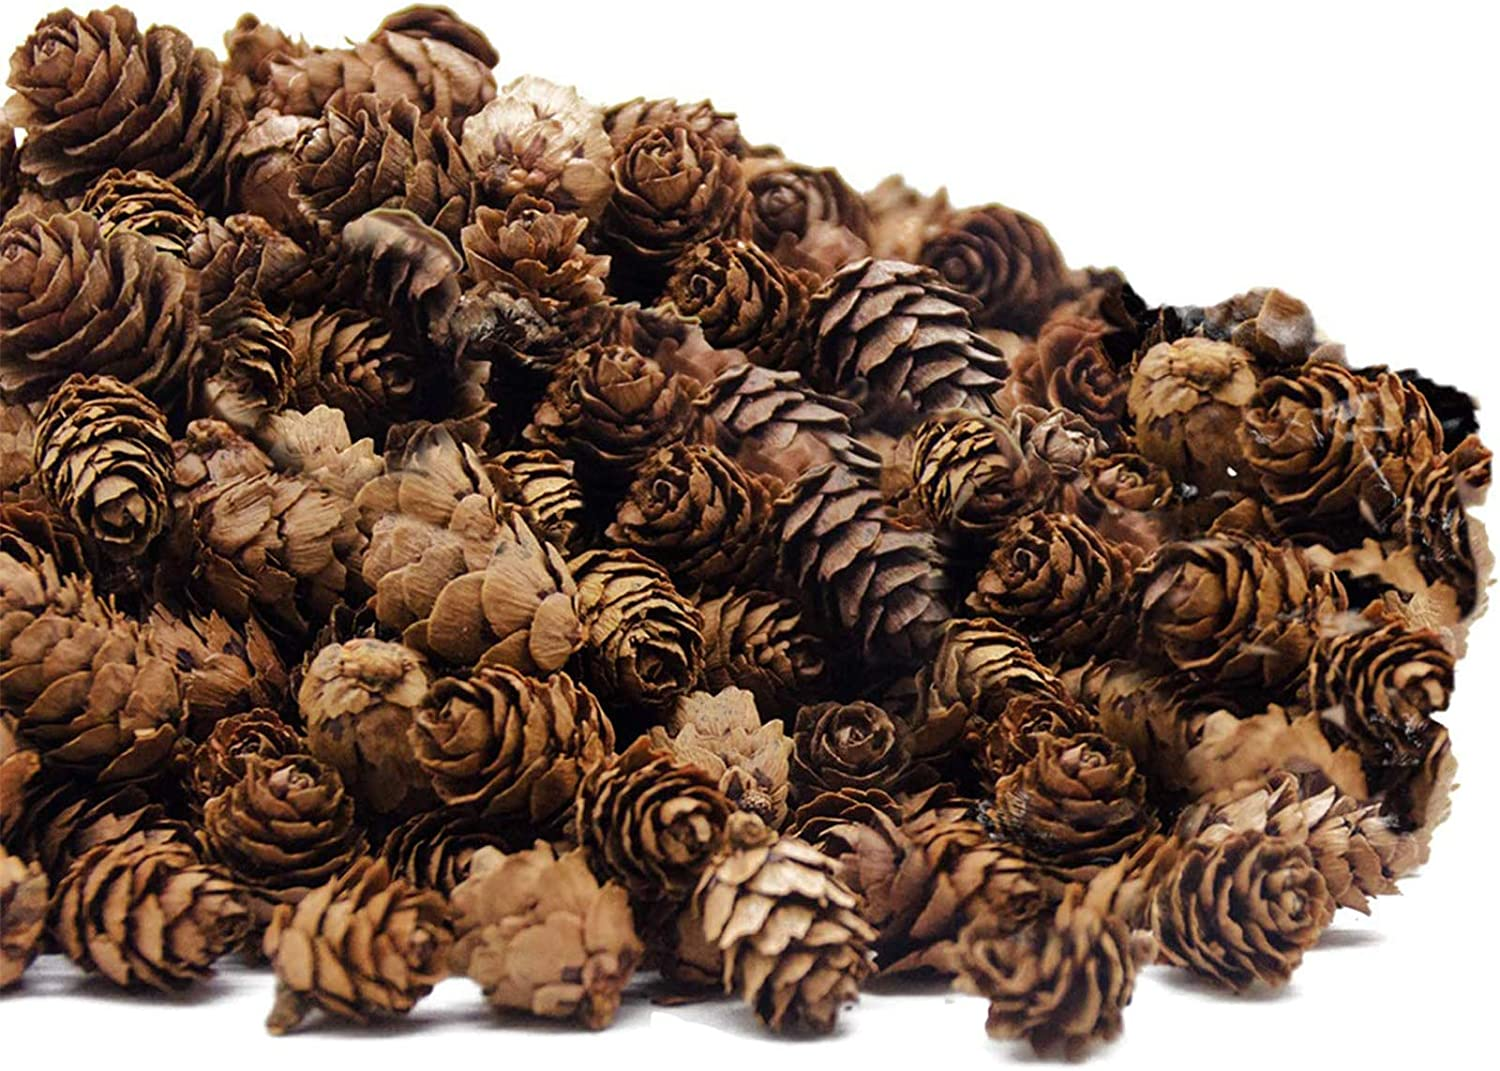 Deloky 250 PCS Christmas Natural Mini Pine Cones-Thanksgiving Pinecones Ornaments for DIY Crafts, Home Decorations ,Fall and Christmas ,Wedding Decor